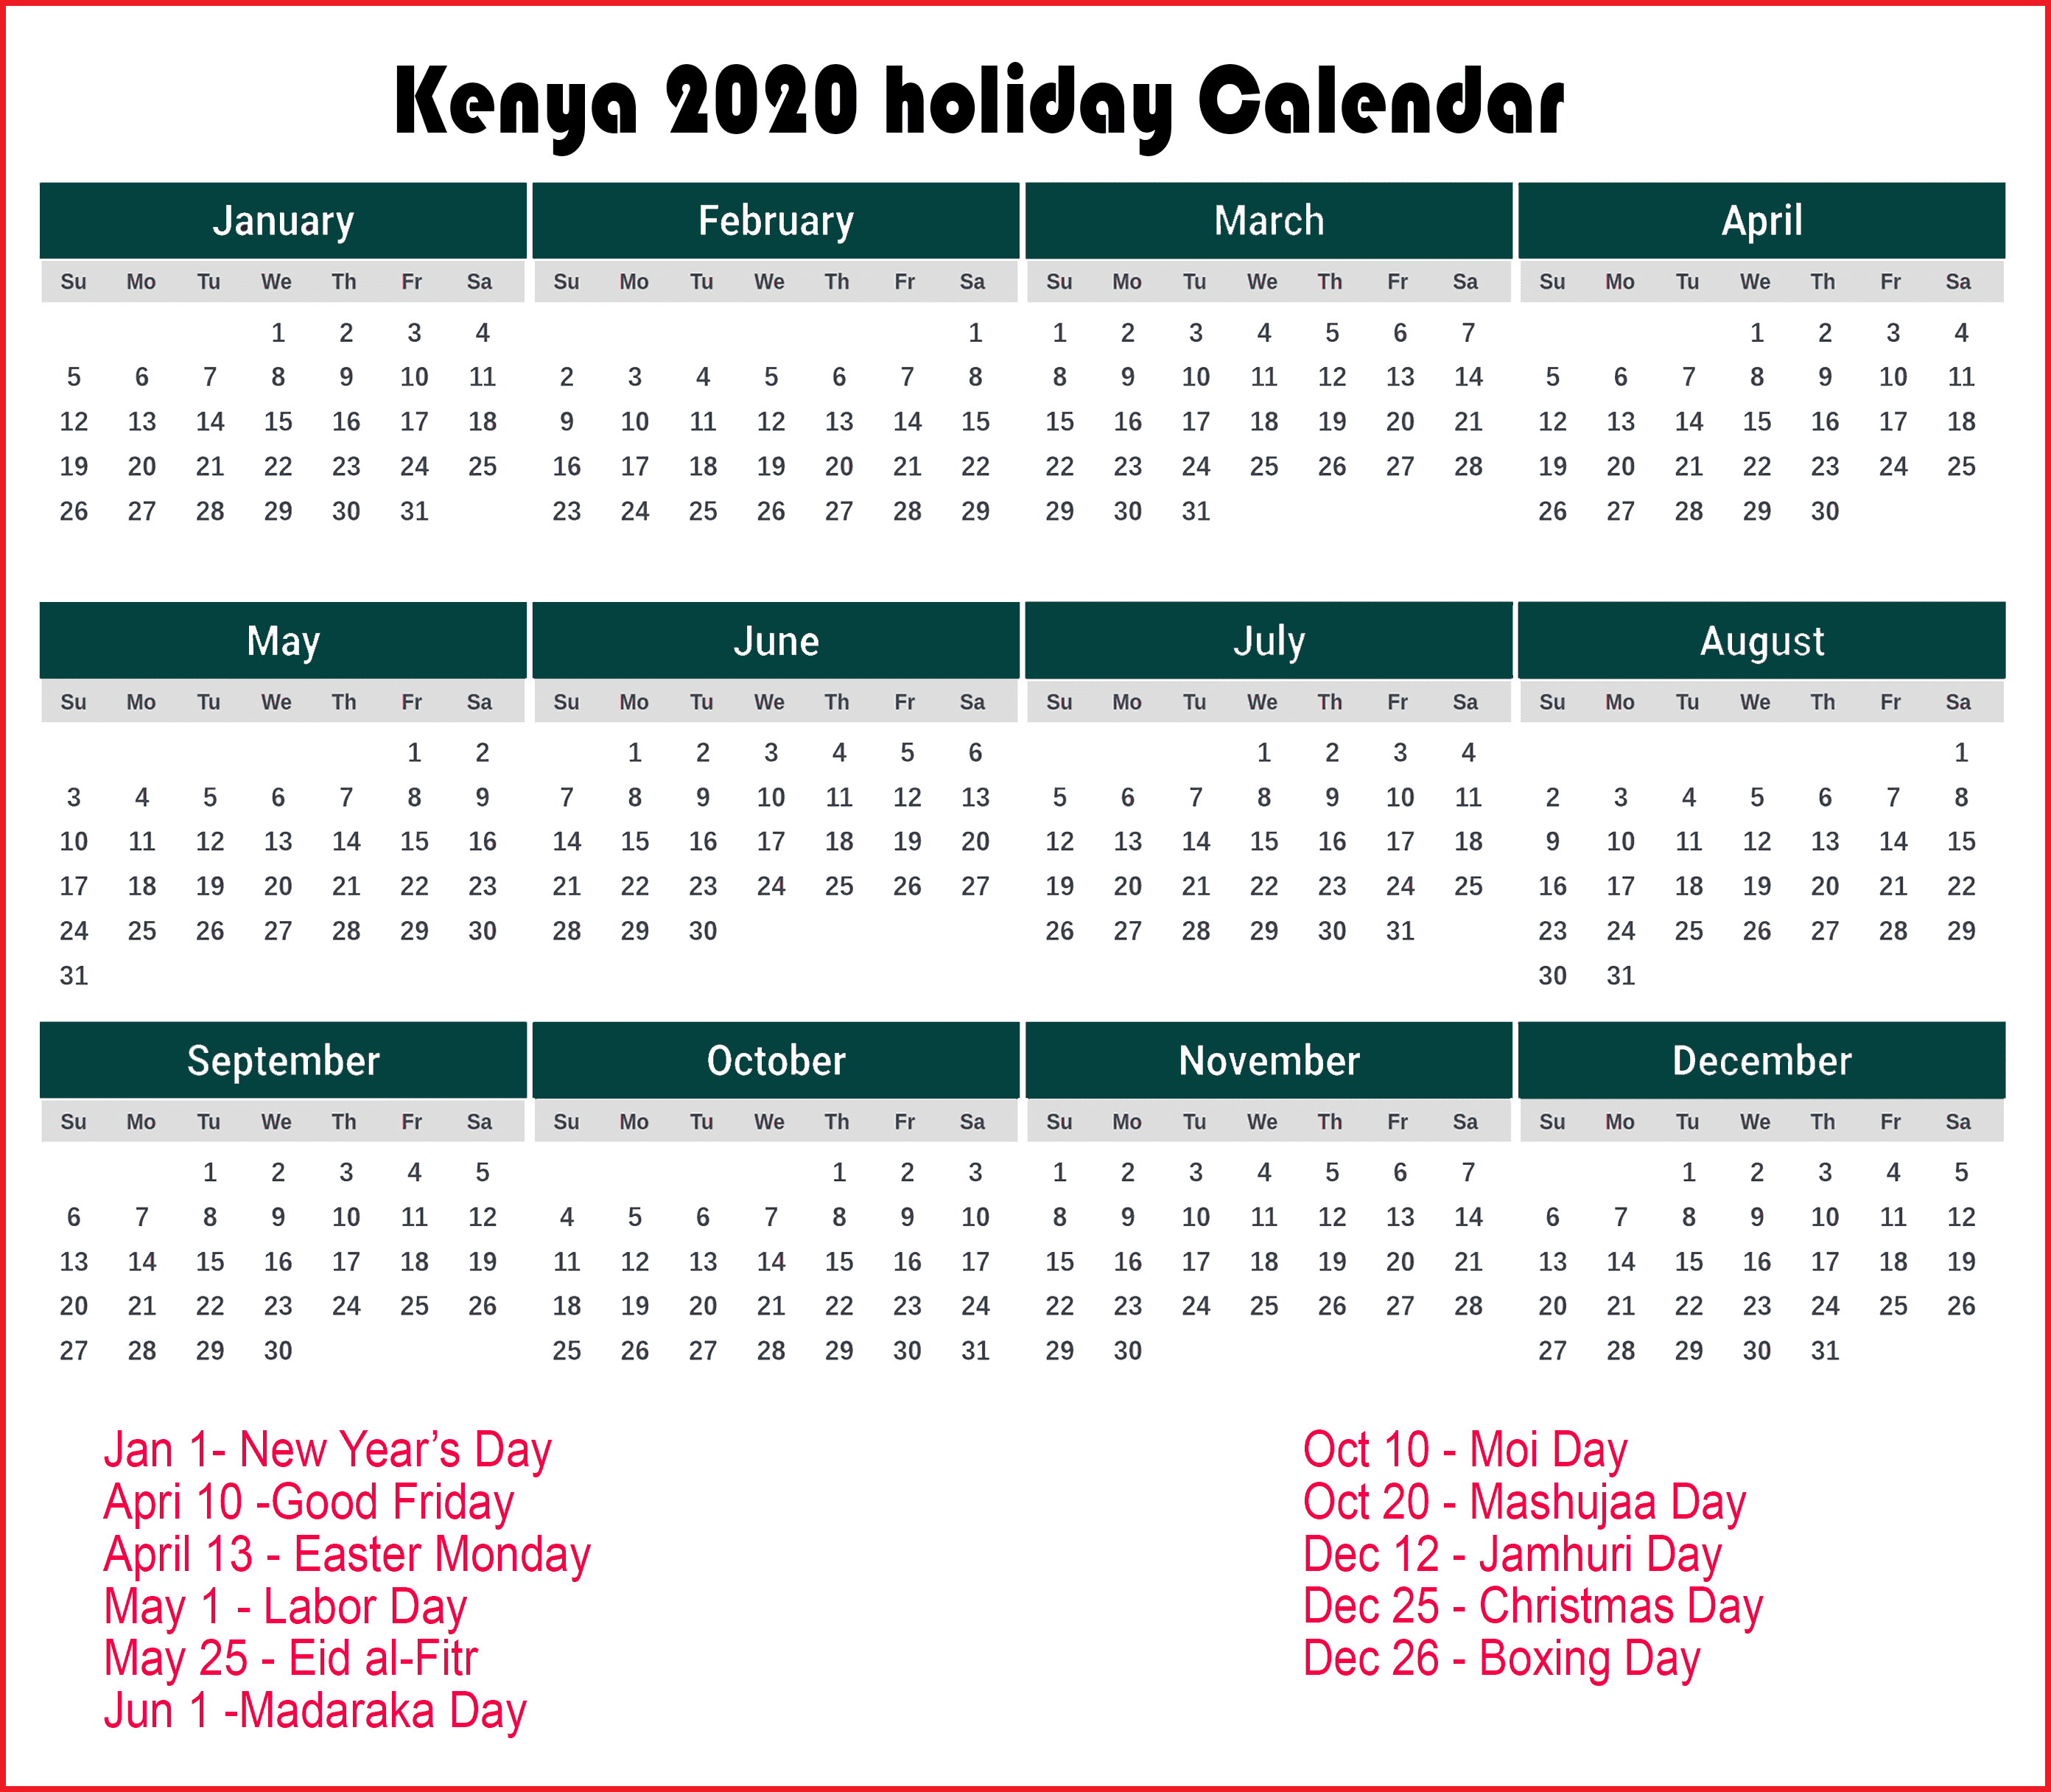 Calendar 2020 Templates With Kenya Holidays